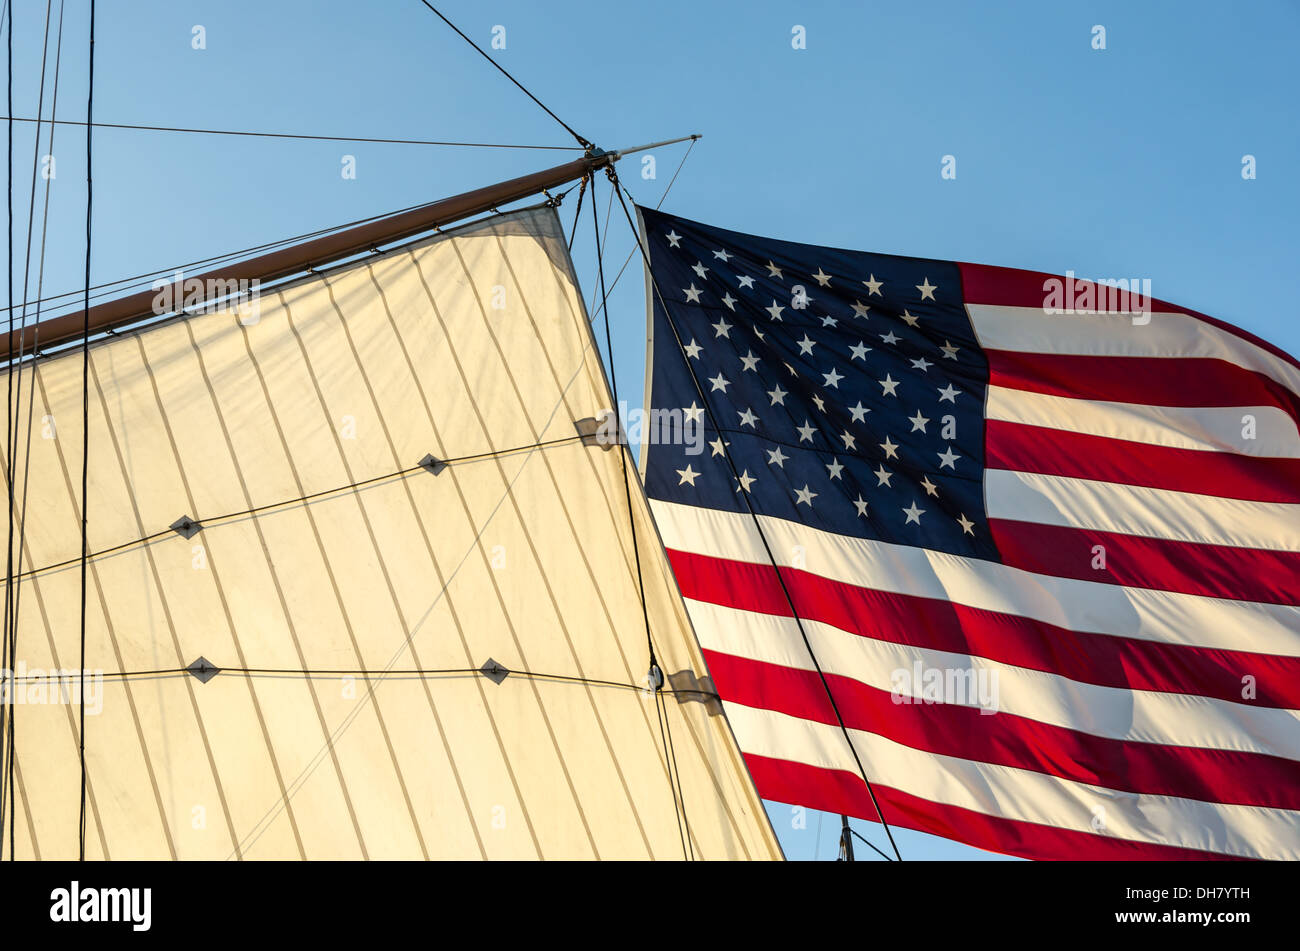 American Flag next to a sail and rigging. - Stock Image